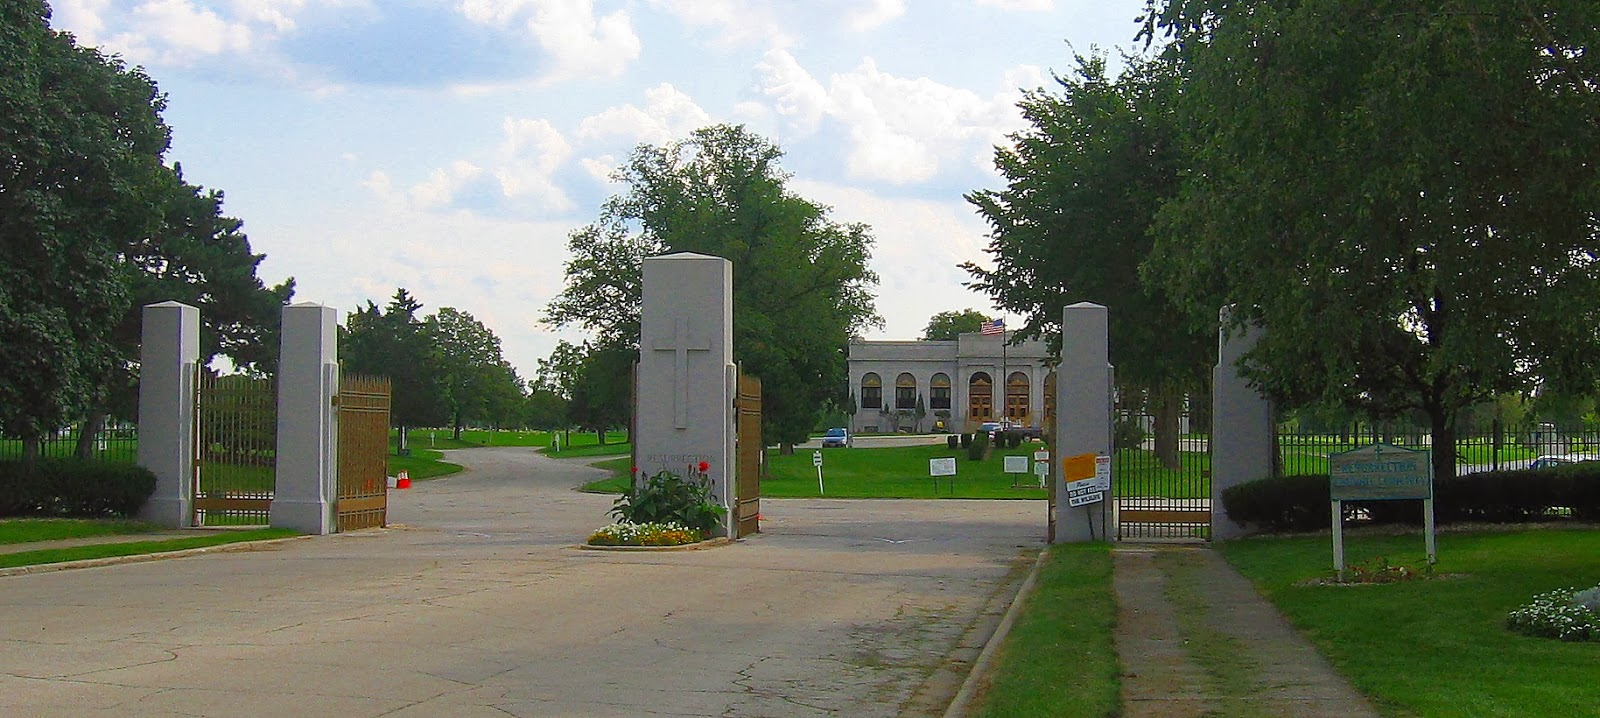 The main gate of Resurrection Cemetery